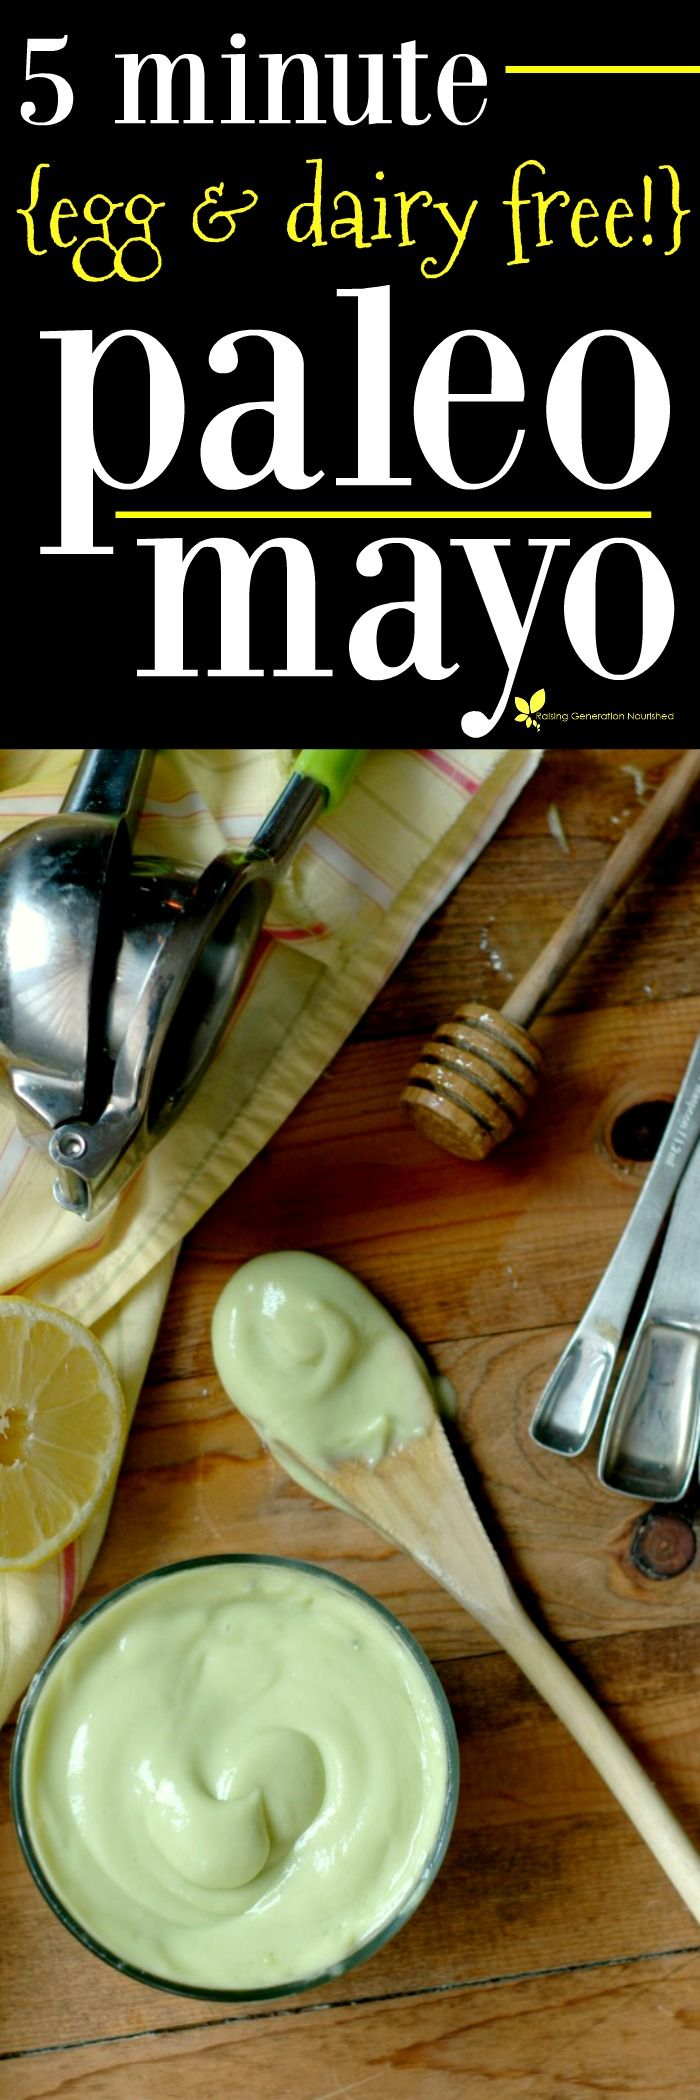 Homemade Paleo Mayonnaise :: Free from common allergens! {Egg, Dairy, Soy, & Gluten Free!}